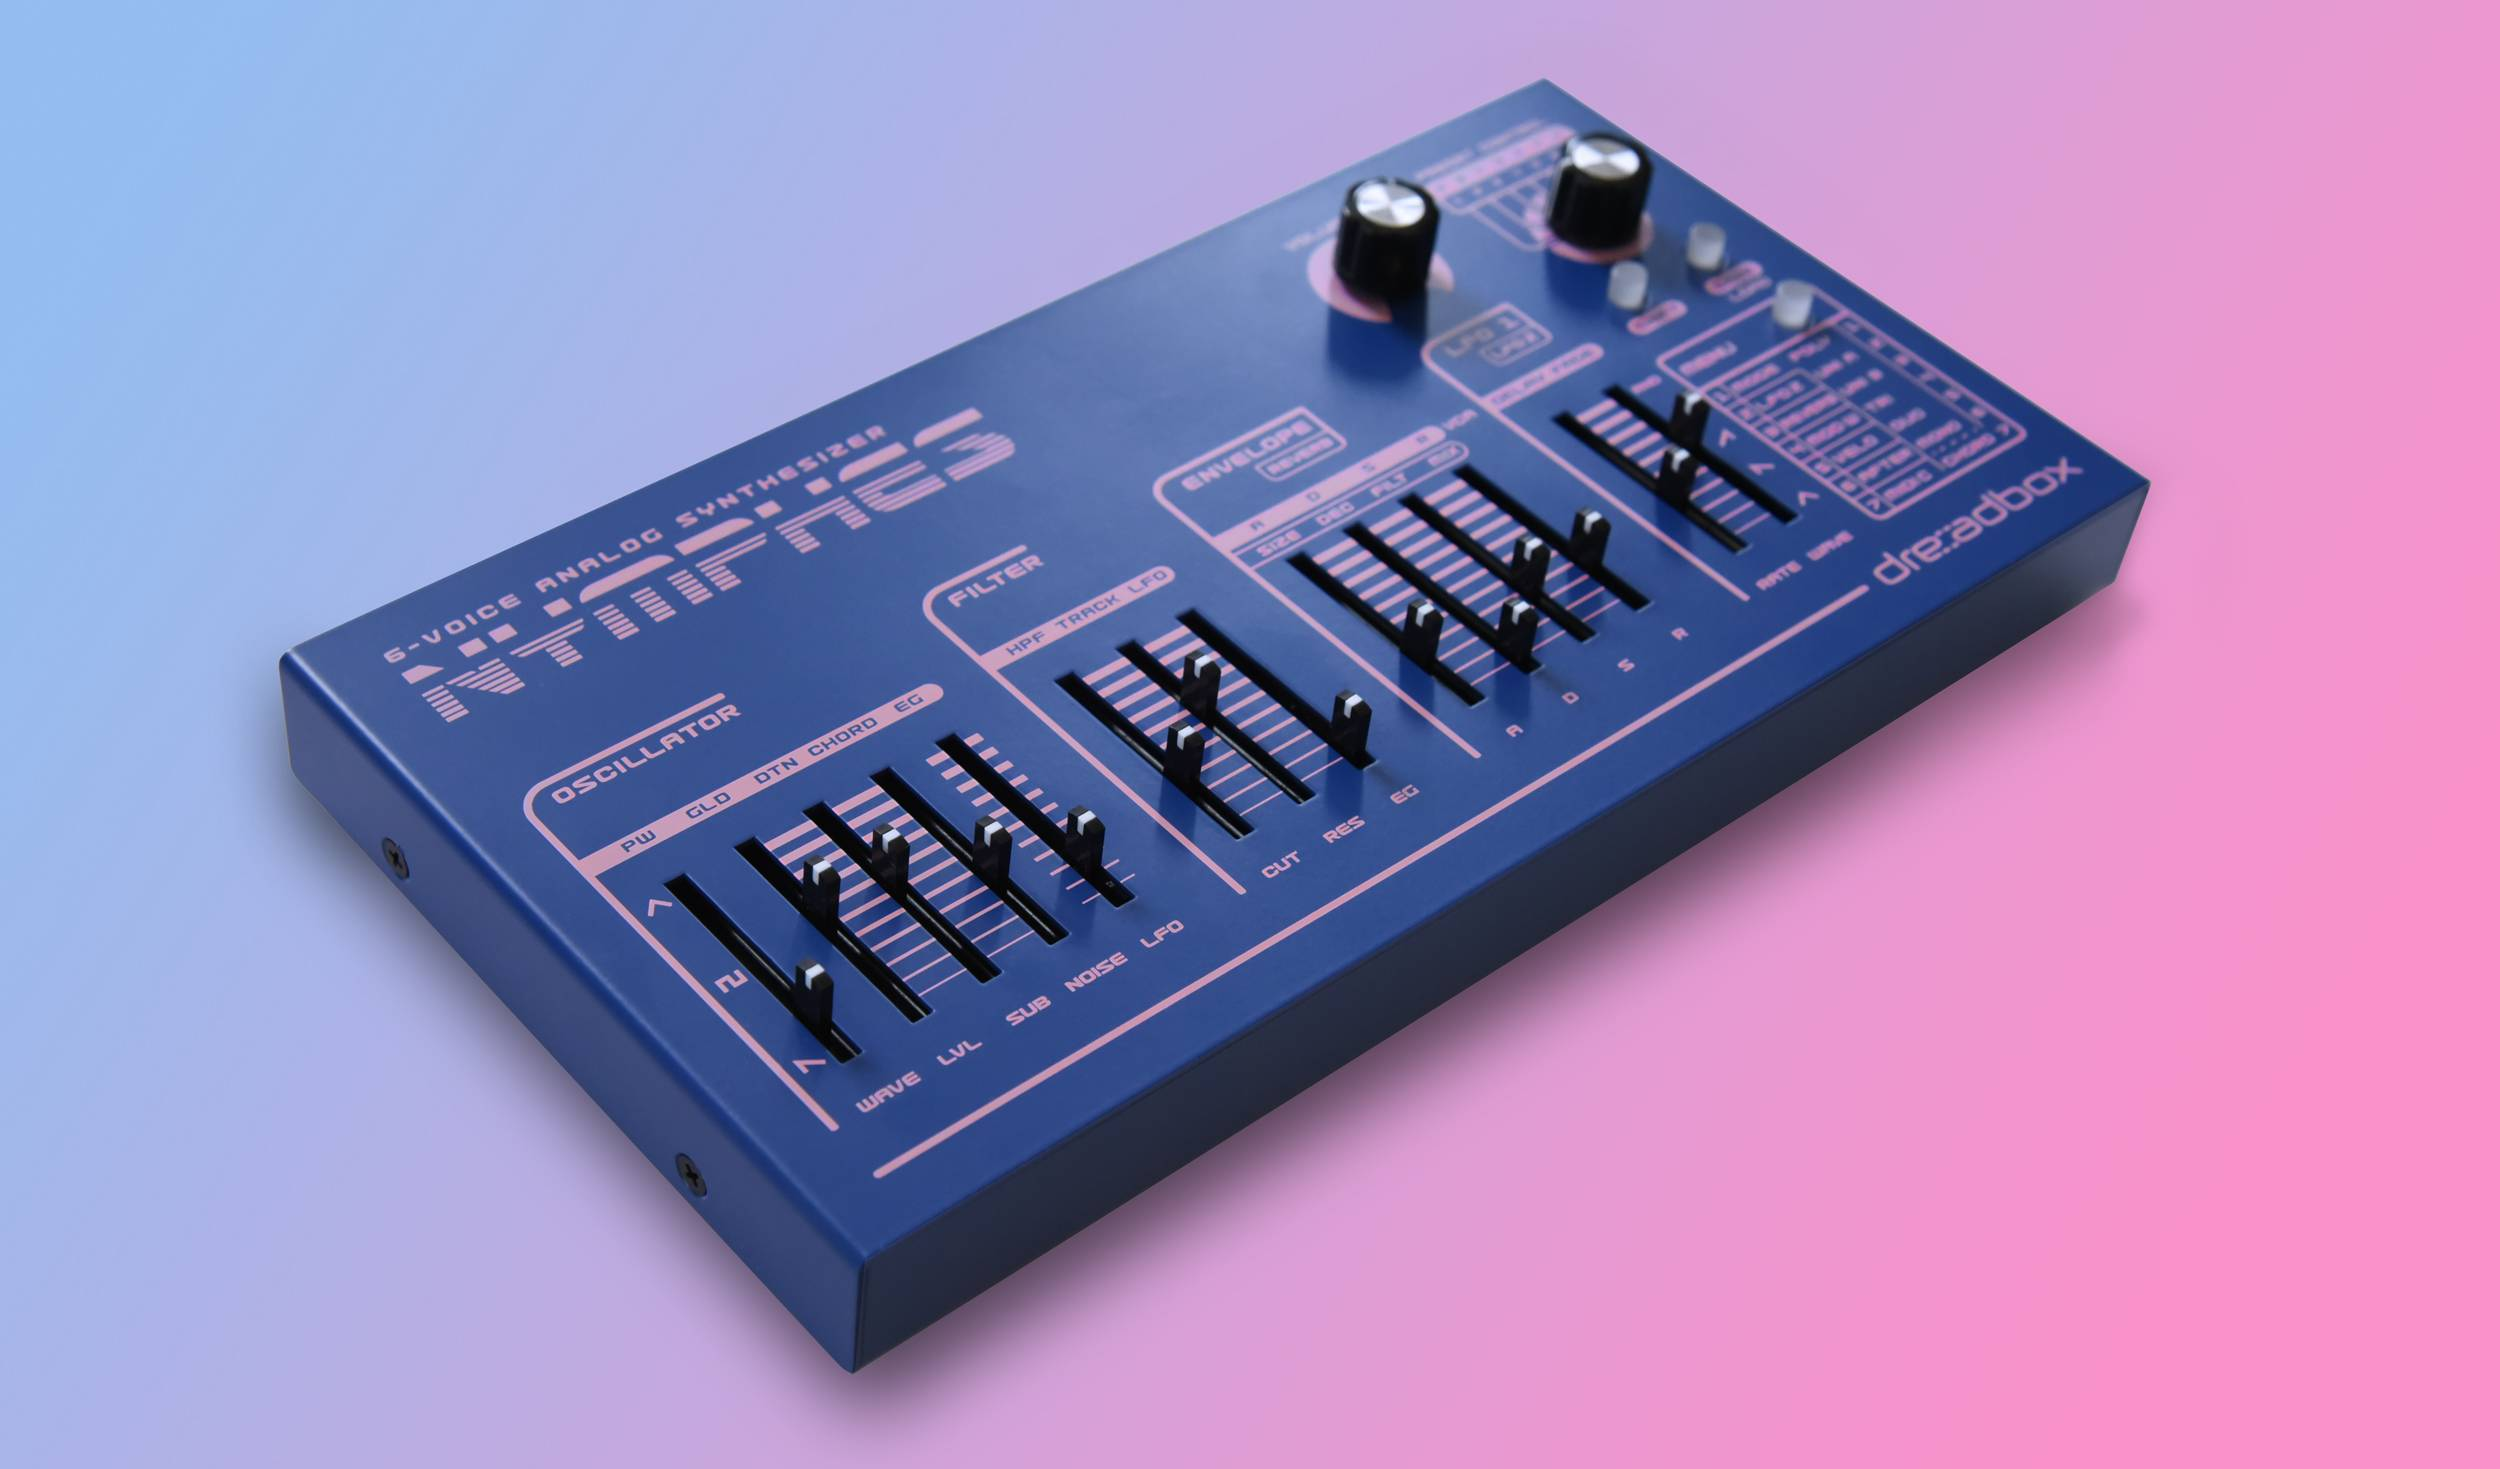 Nymphes is the new six-voice analog synth from Dreadbox